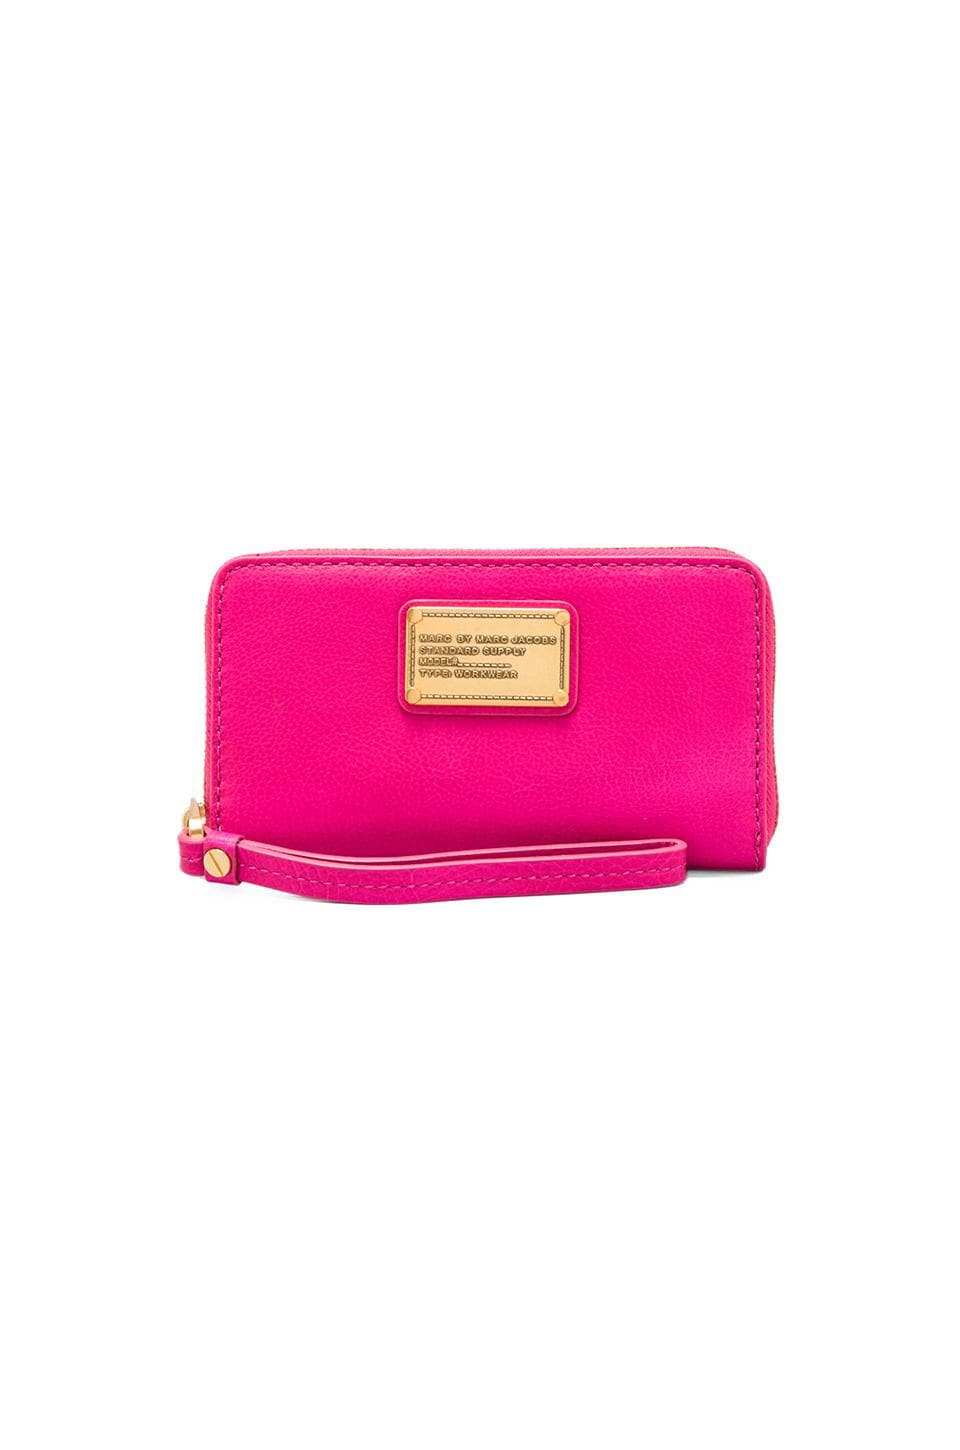 Marc by Marc Jacobs Classic Q Wingman in Pop Pink